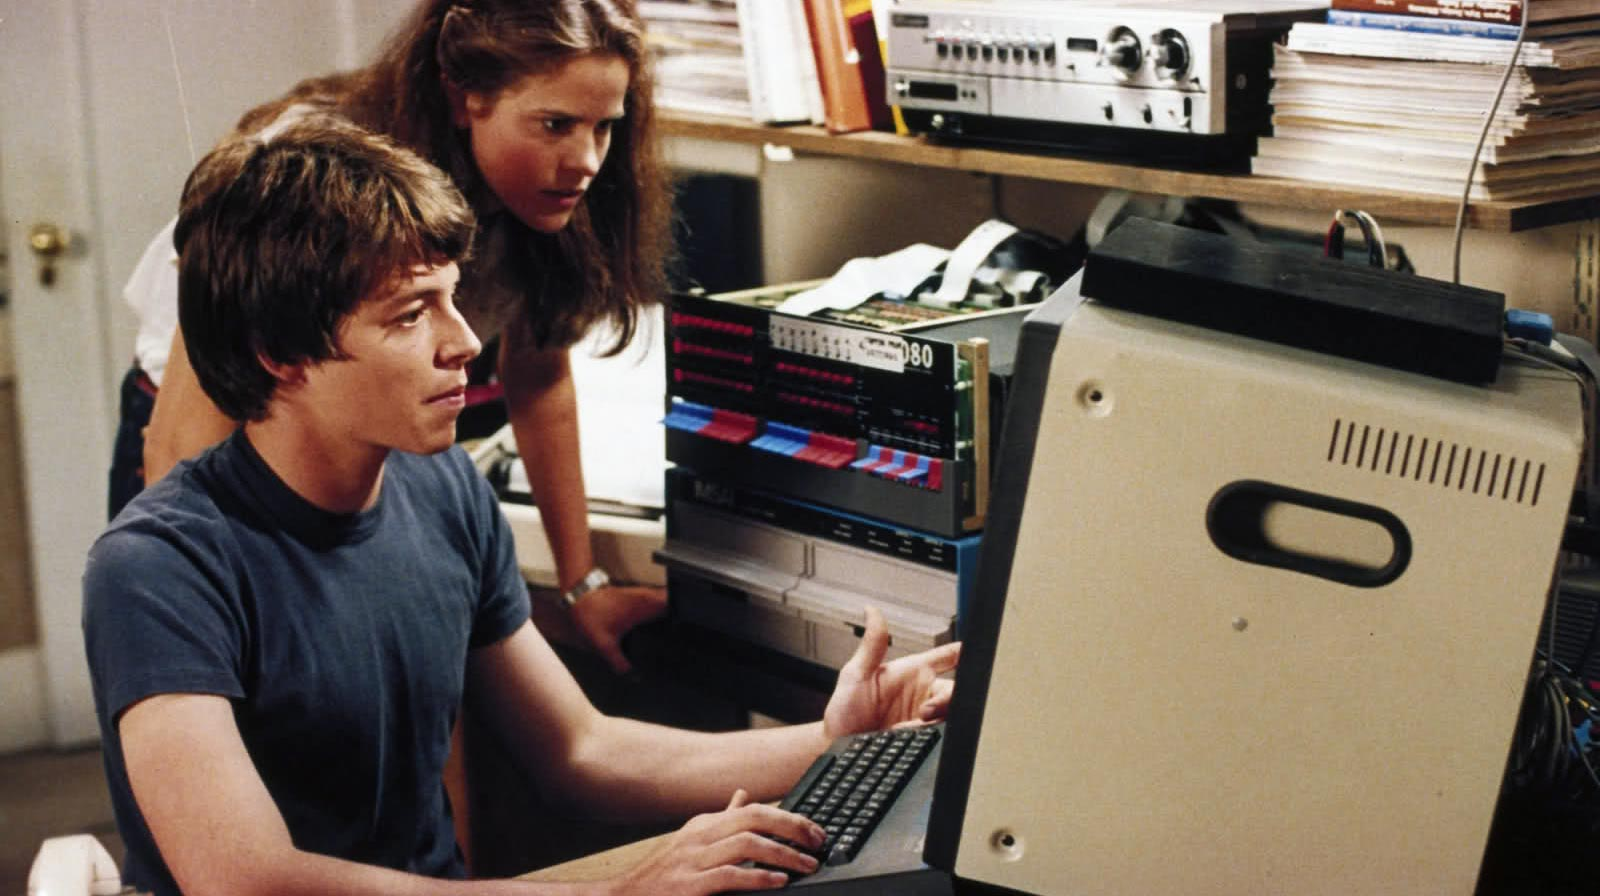 Jennifer Mack (Ally Sheedy) et David Lightman (Matthew Broderick) dans WarGames (Image : MGM).